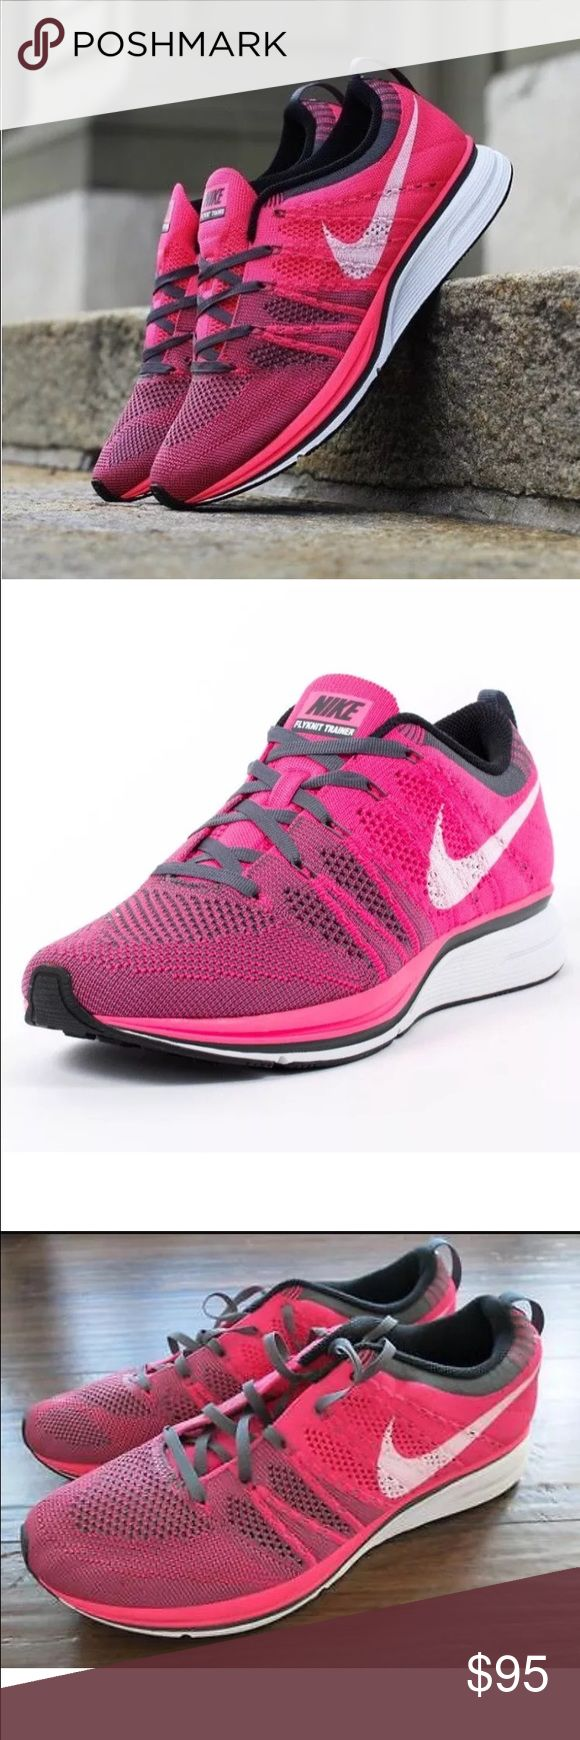 Nike Flyknit Trainer - Womens 7.5/Mens 6 Brand new item. Nike